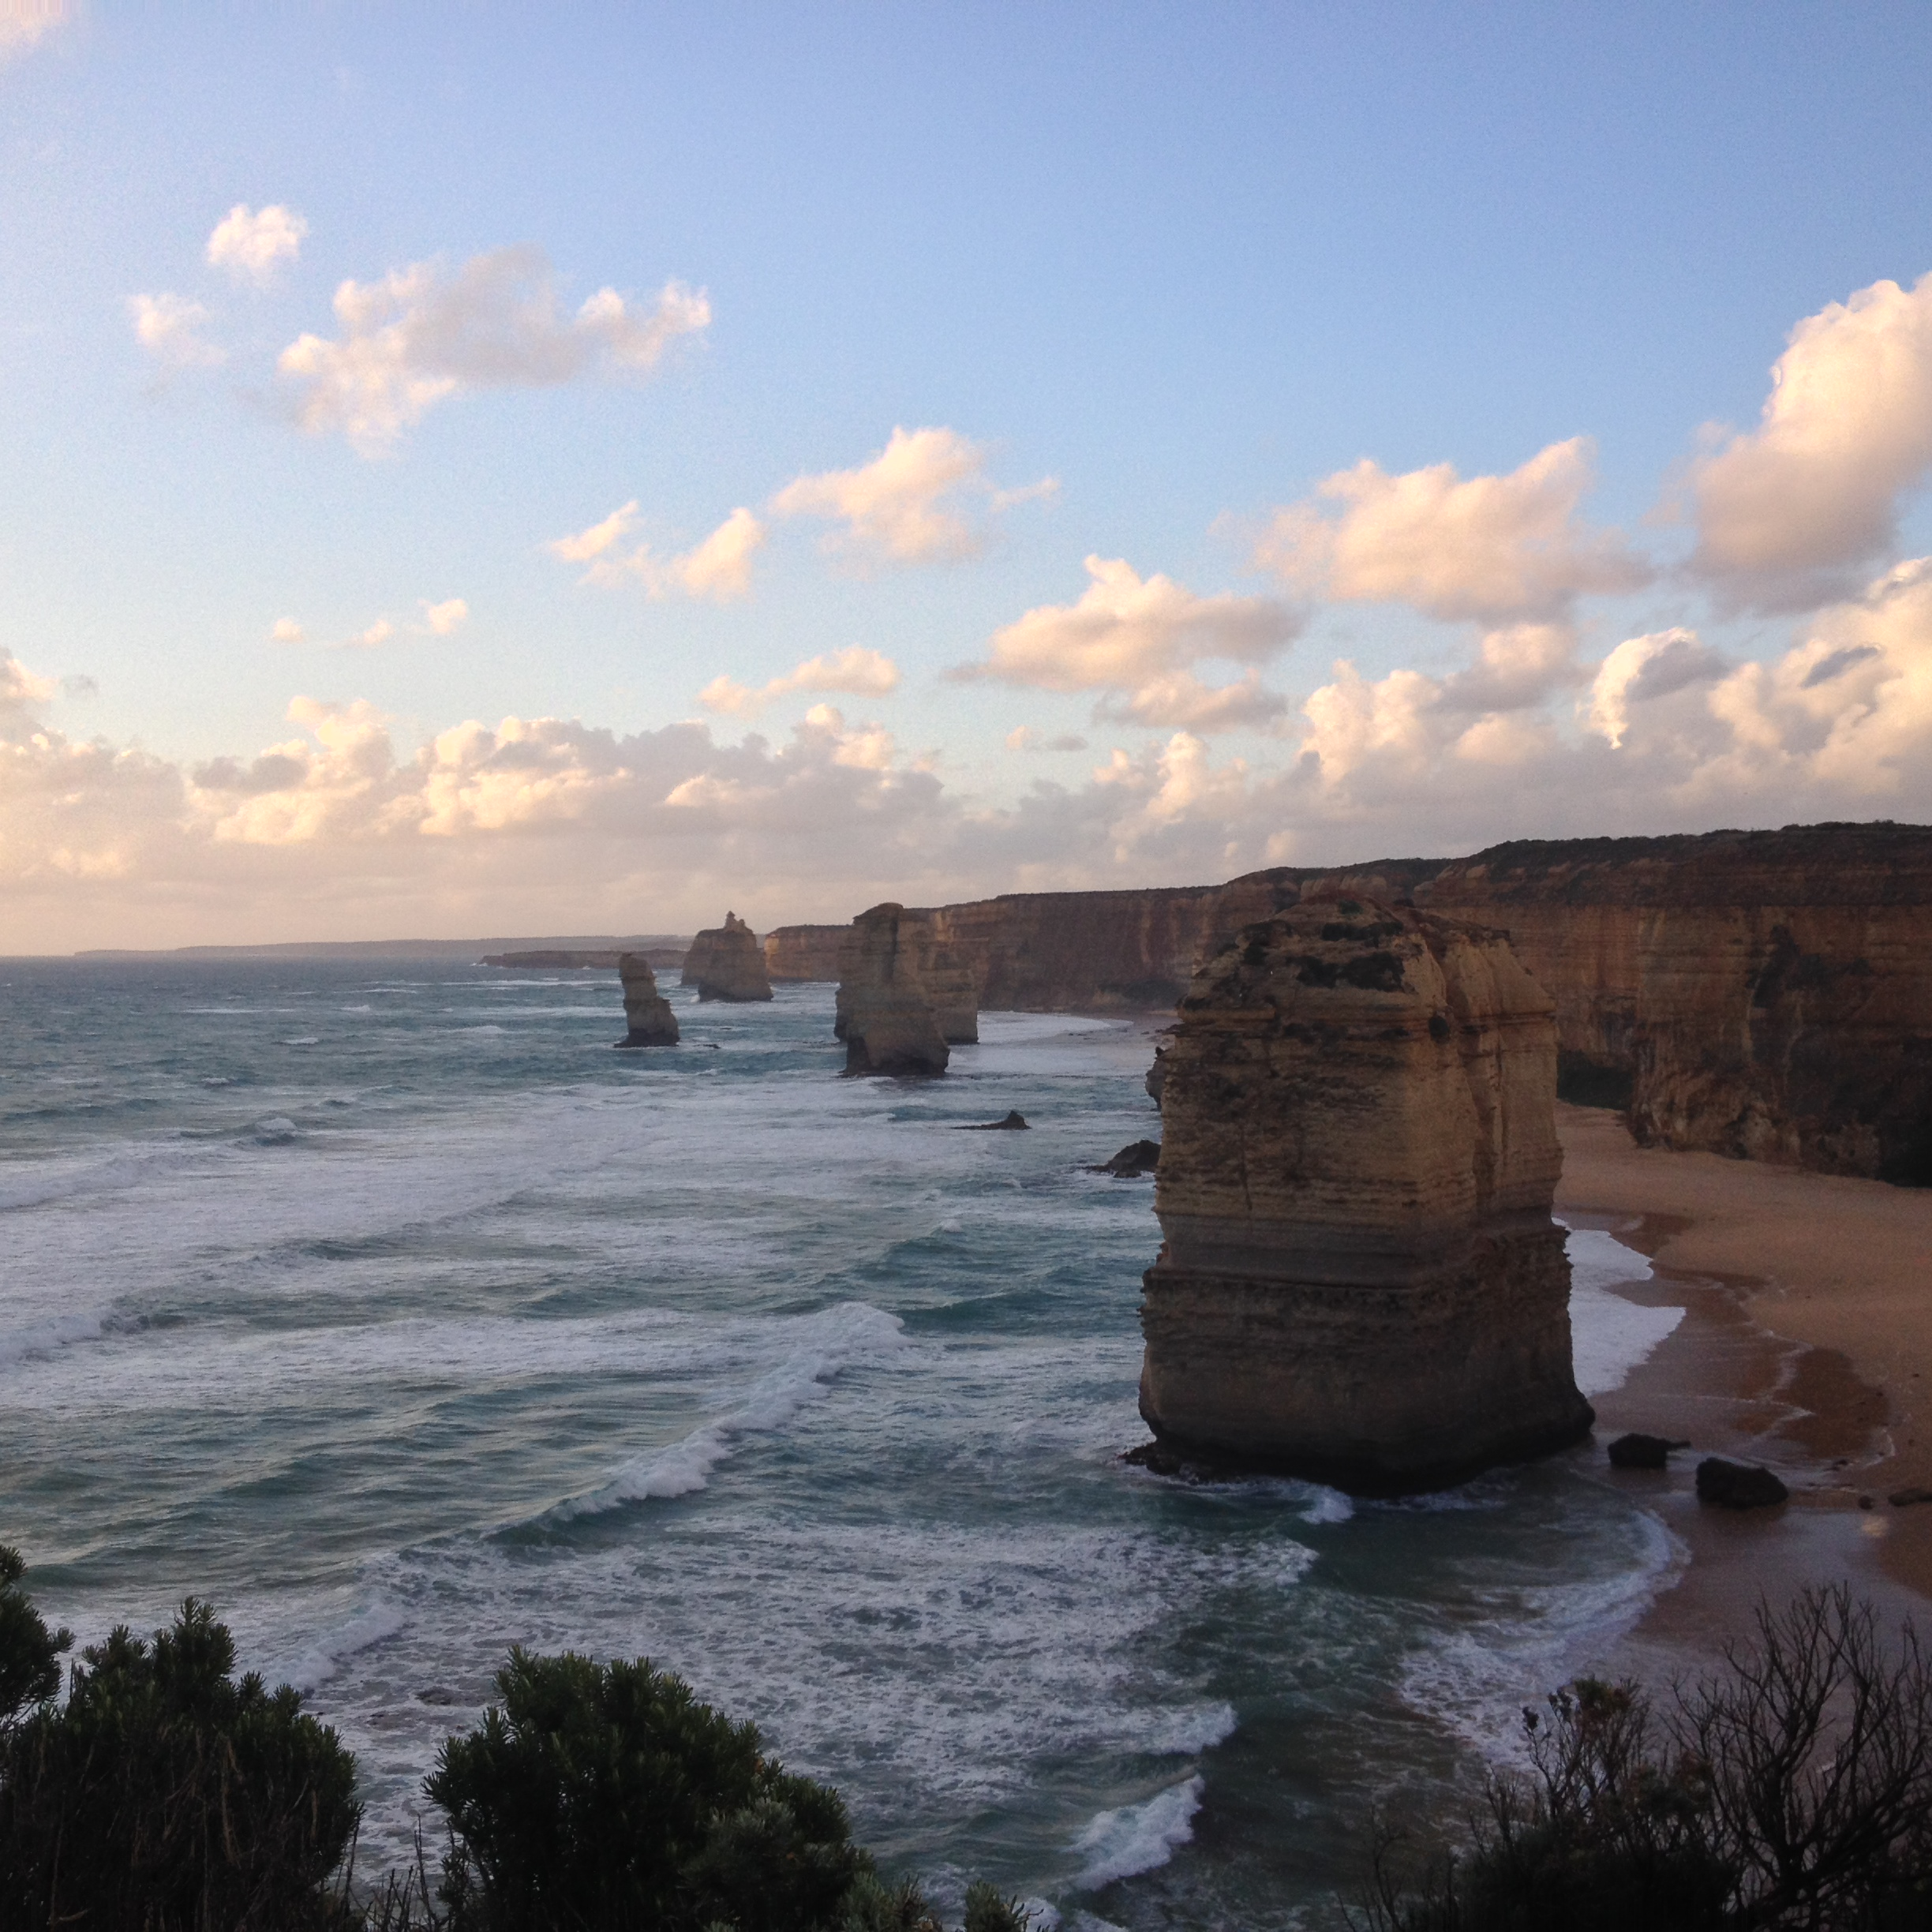 12 Apostles Rock Formation  on the Great Ocean Road in Australia. An unforgettable and amazing site that I'll never forget and am so glad I was able to see it on my experience abroad in Australia.